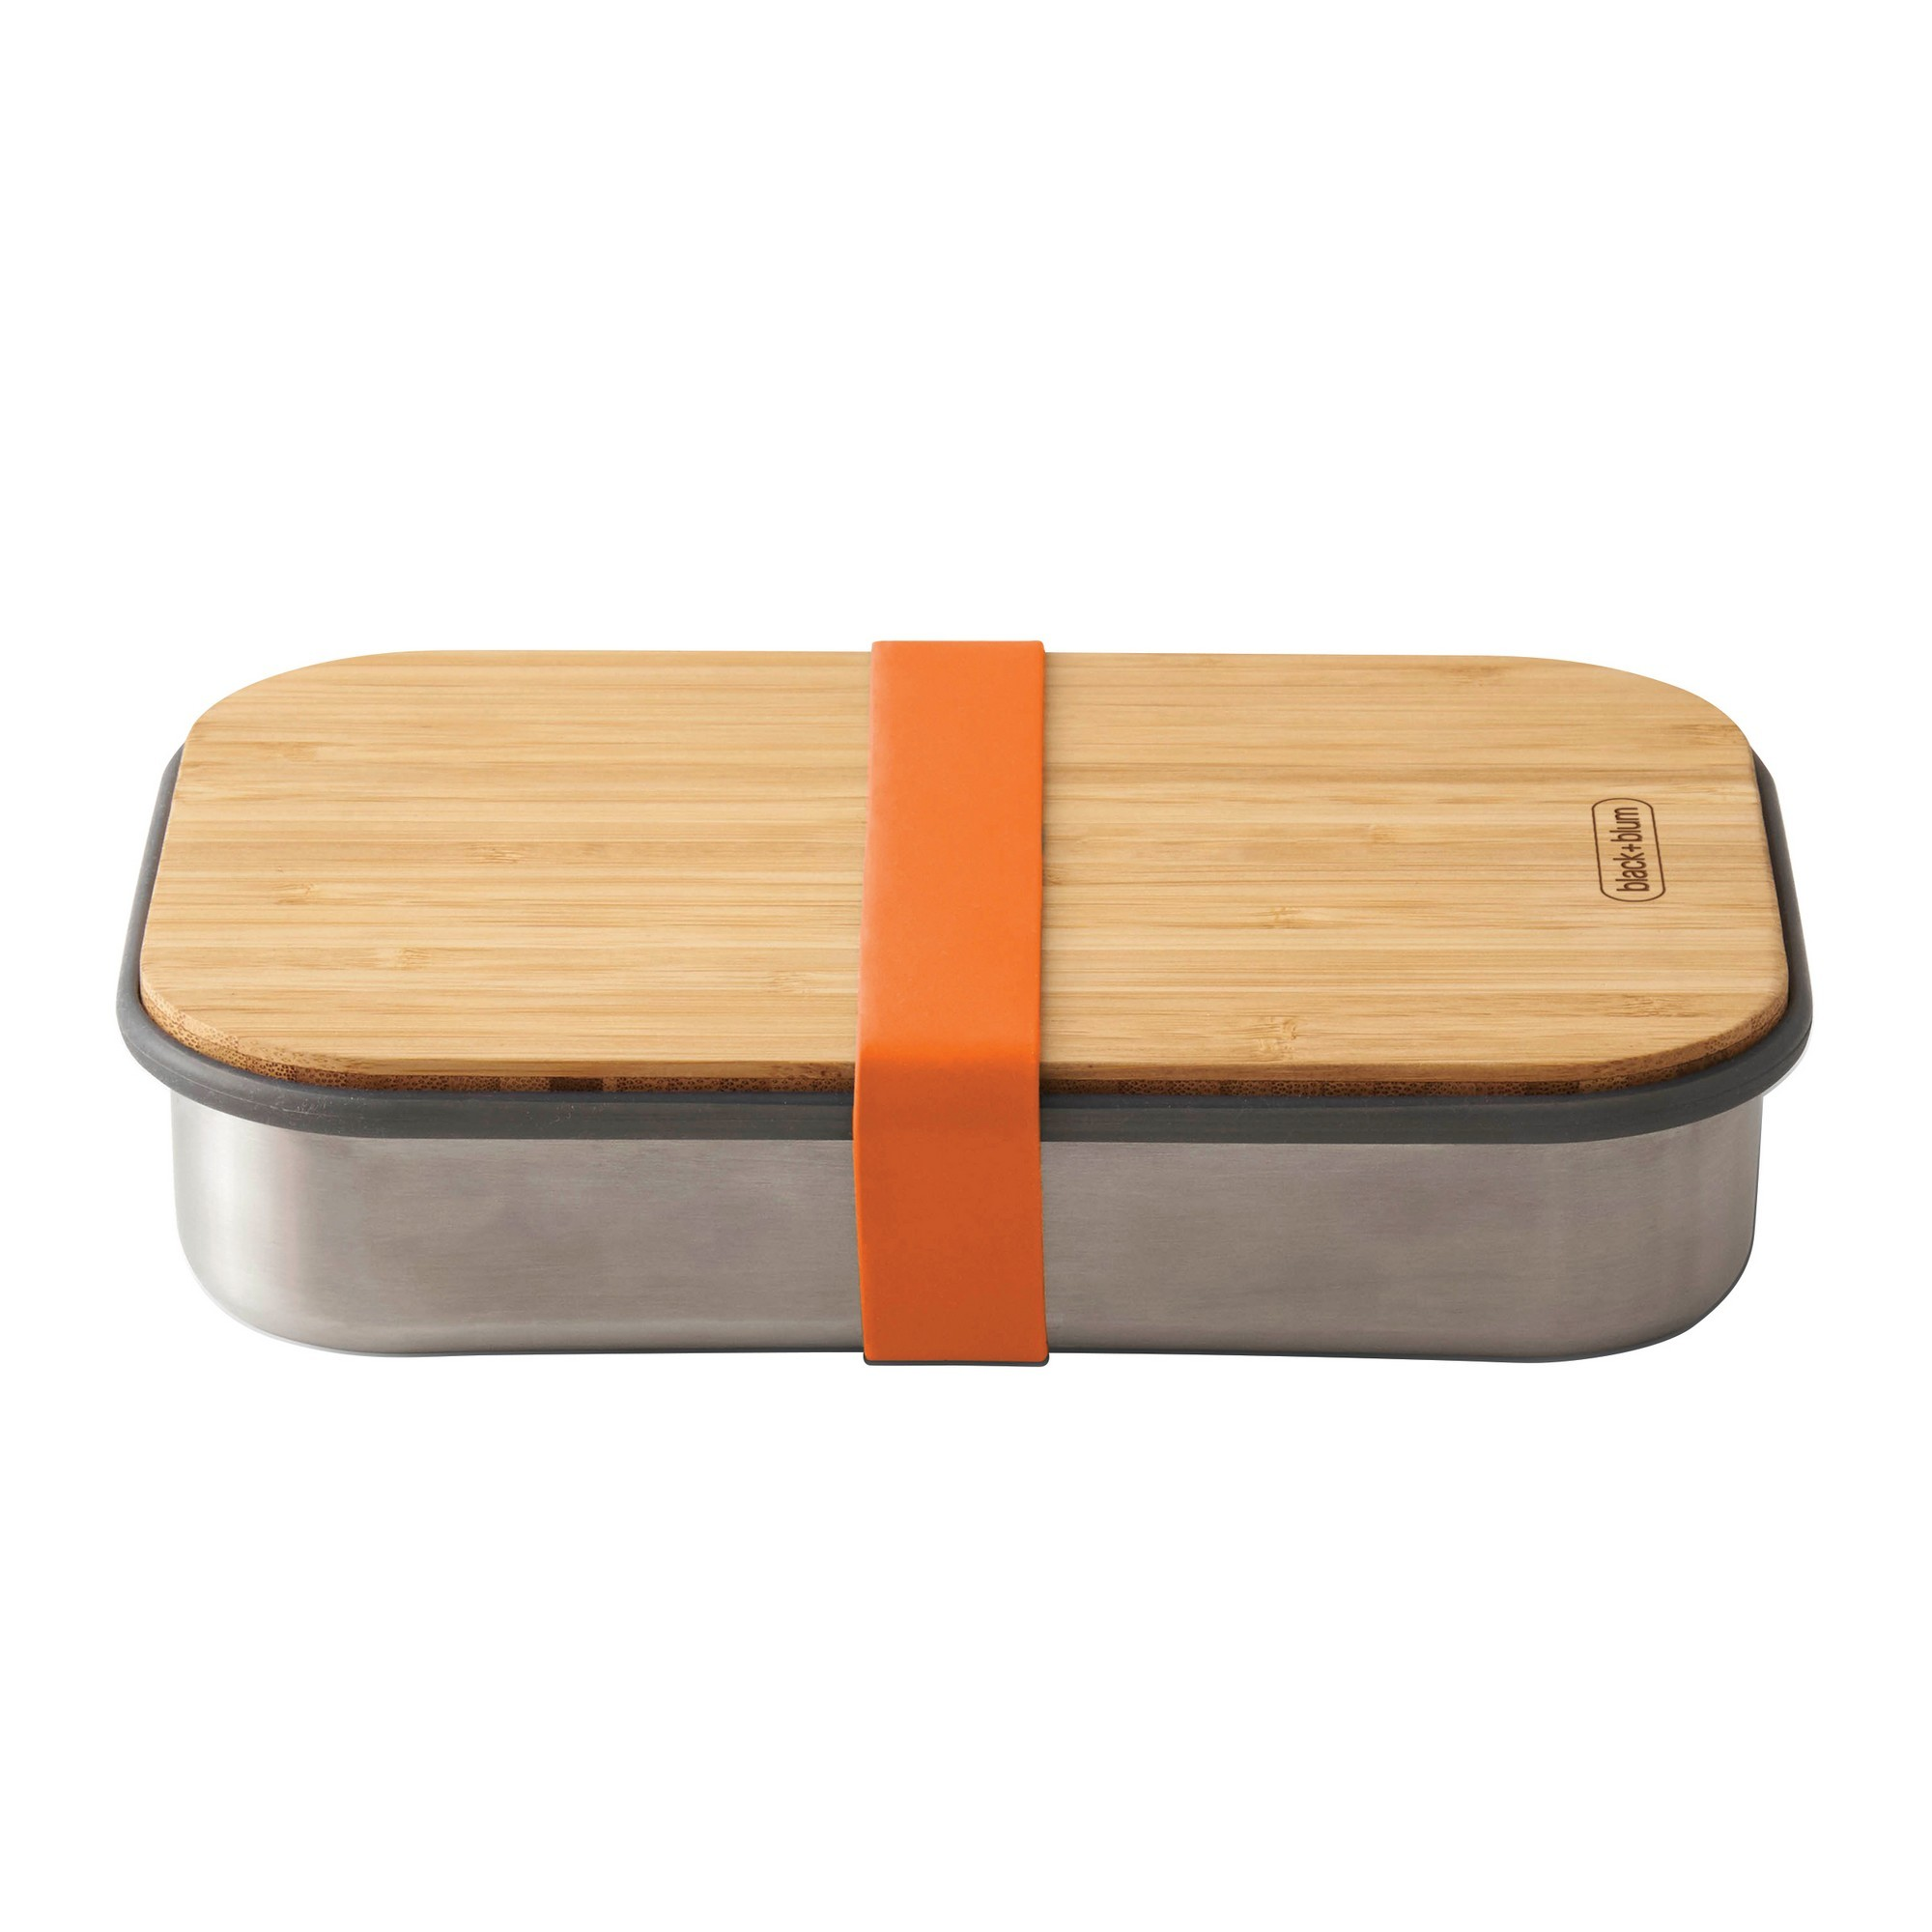 Black + Blum Stainless Steel Sandwich Box, 900ml, Orange